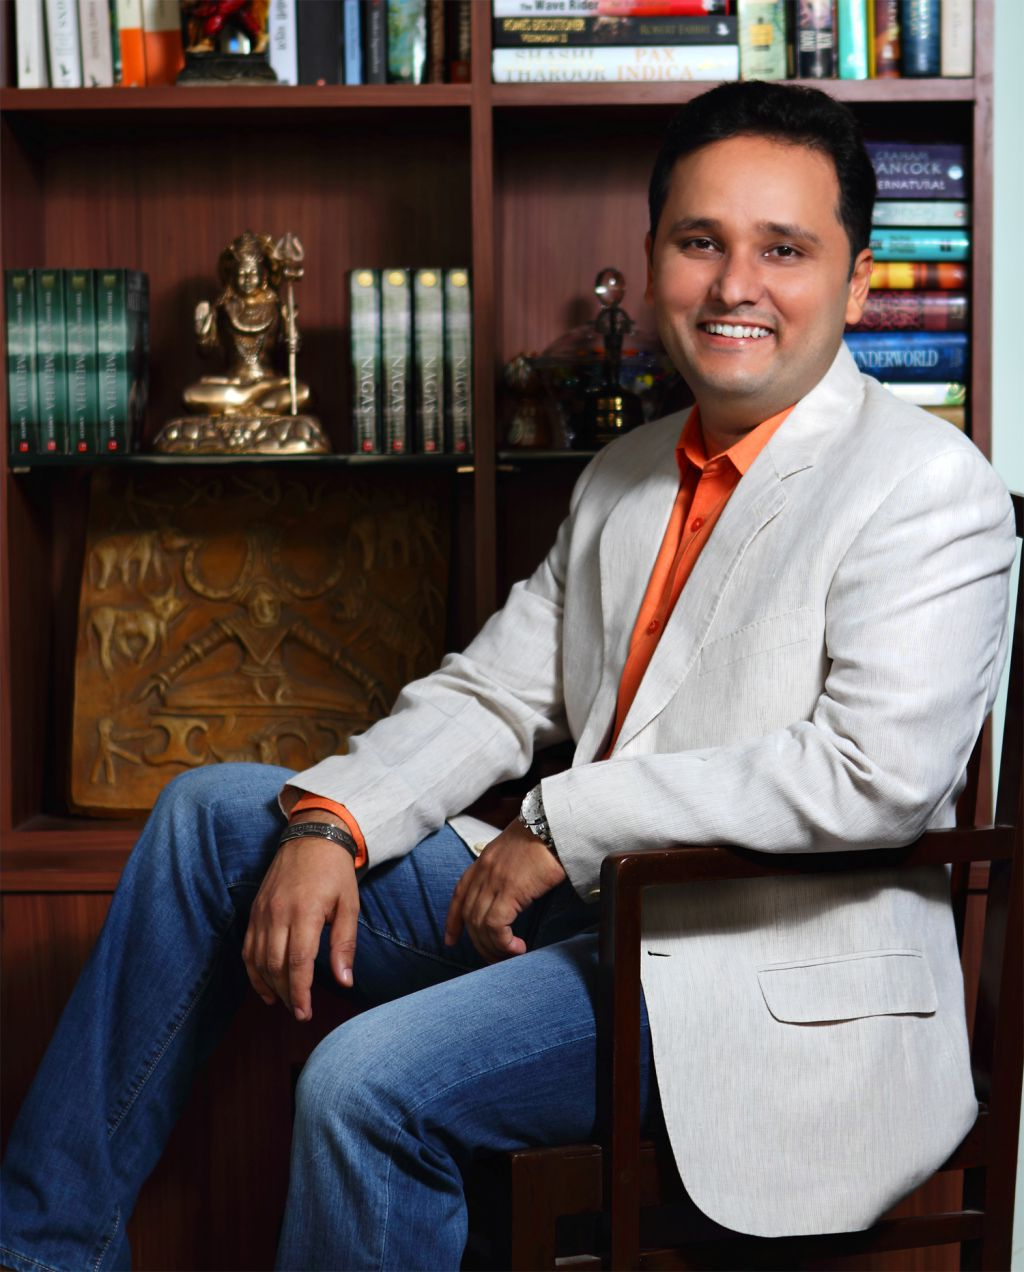 Amish Tripathi Books